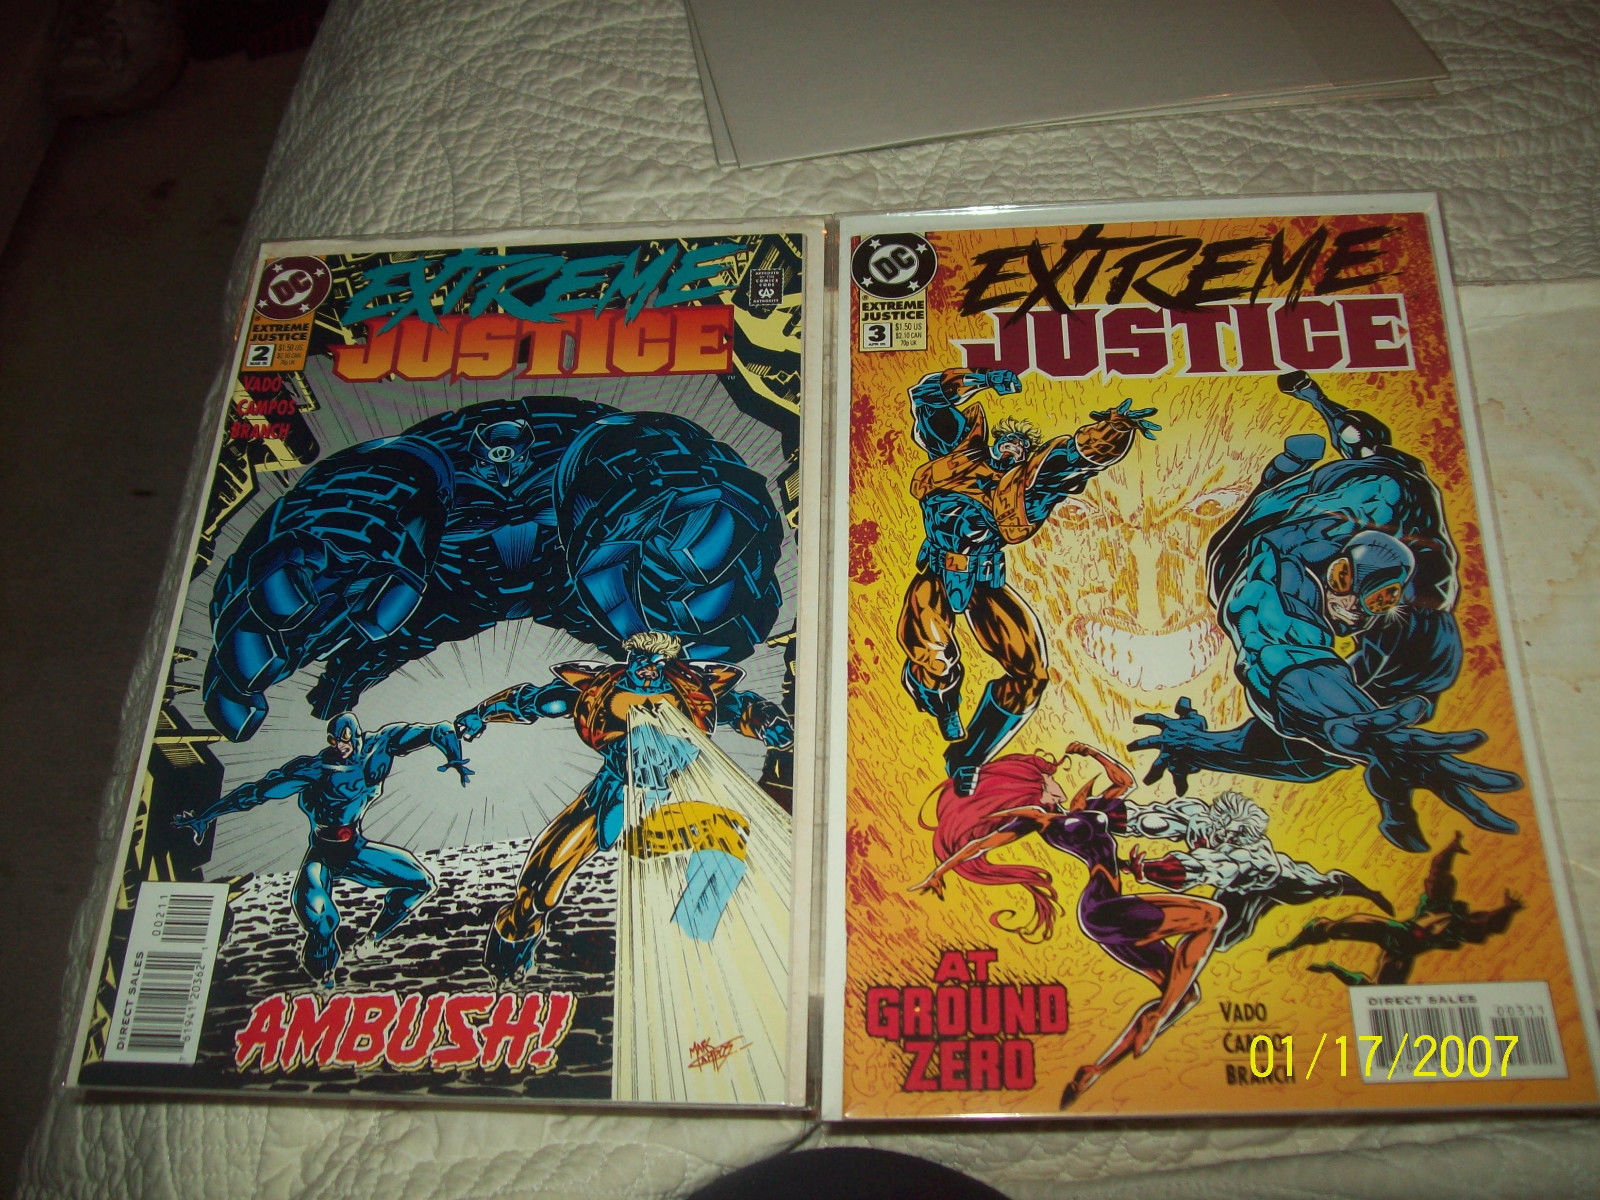 EXTREME JUSTICE#0, 1, 2, 3, 4, 5, 6, 7, 8,